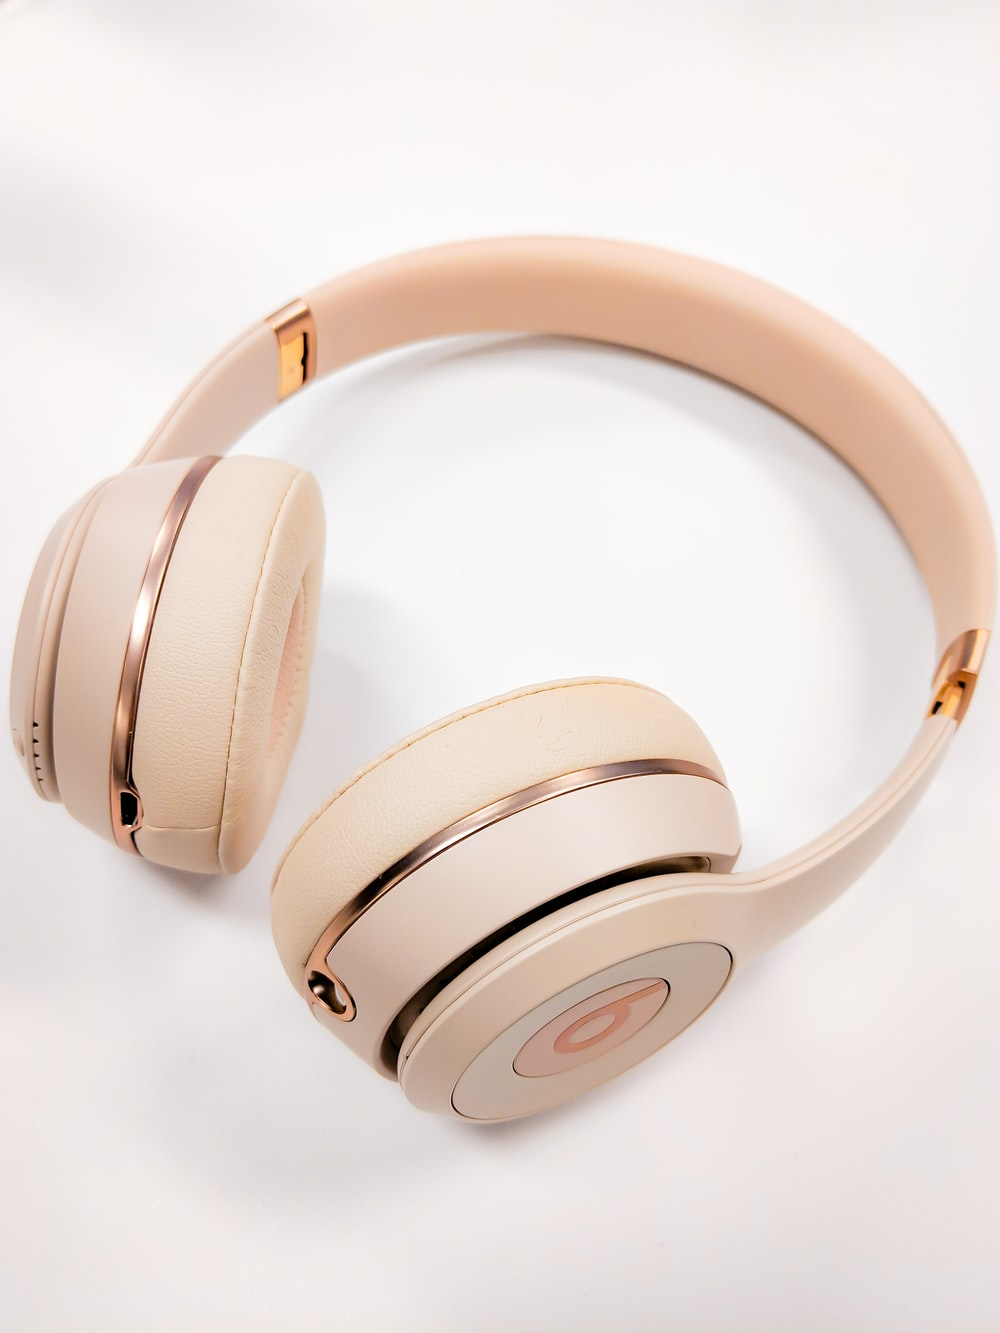 Beats Headphone Pictures Download Free Images On Unsplash